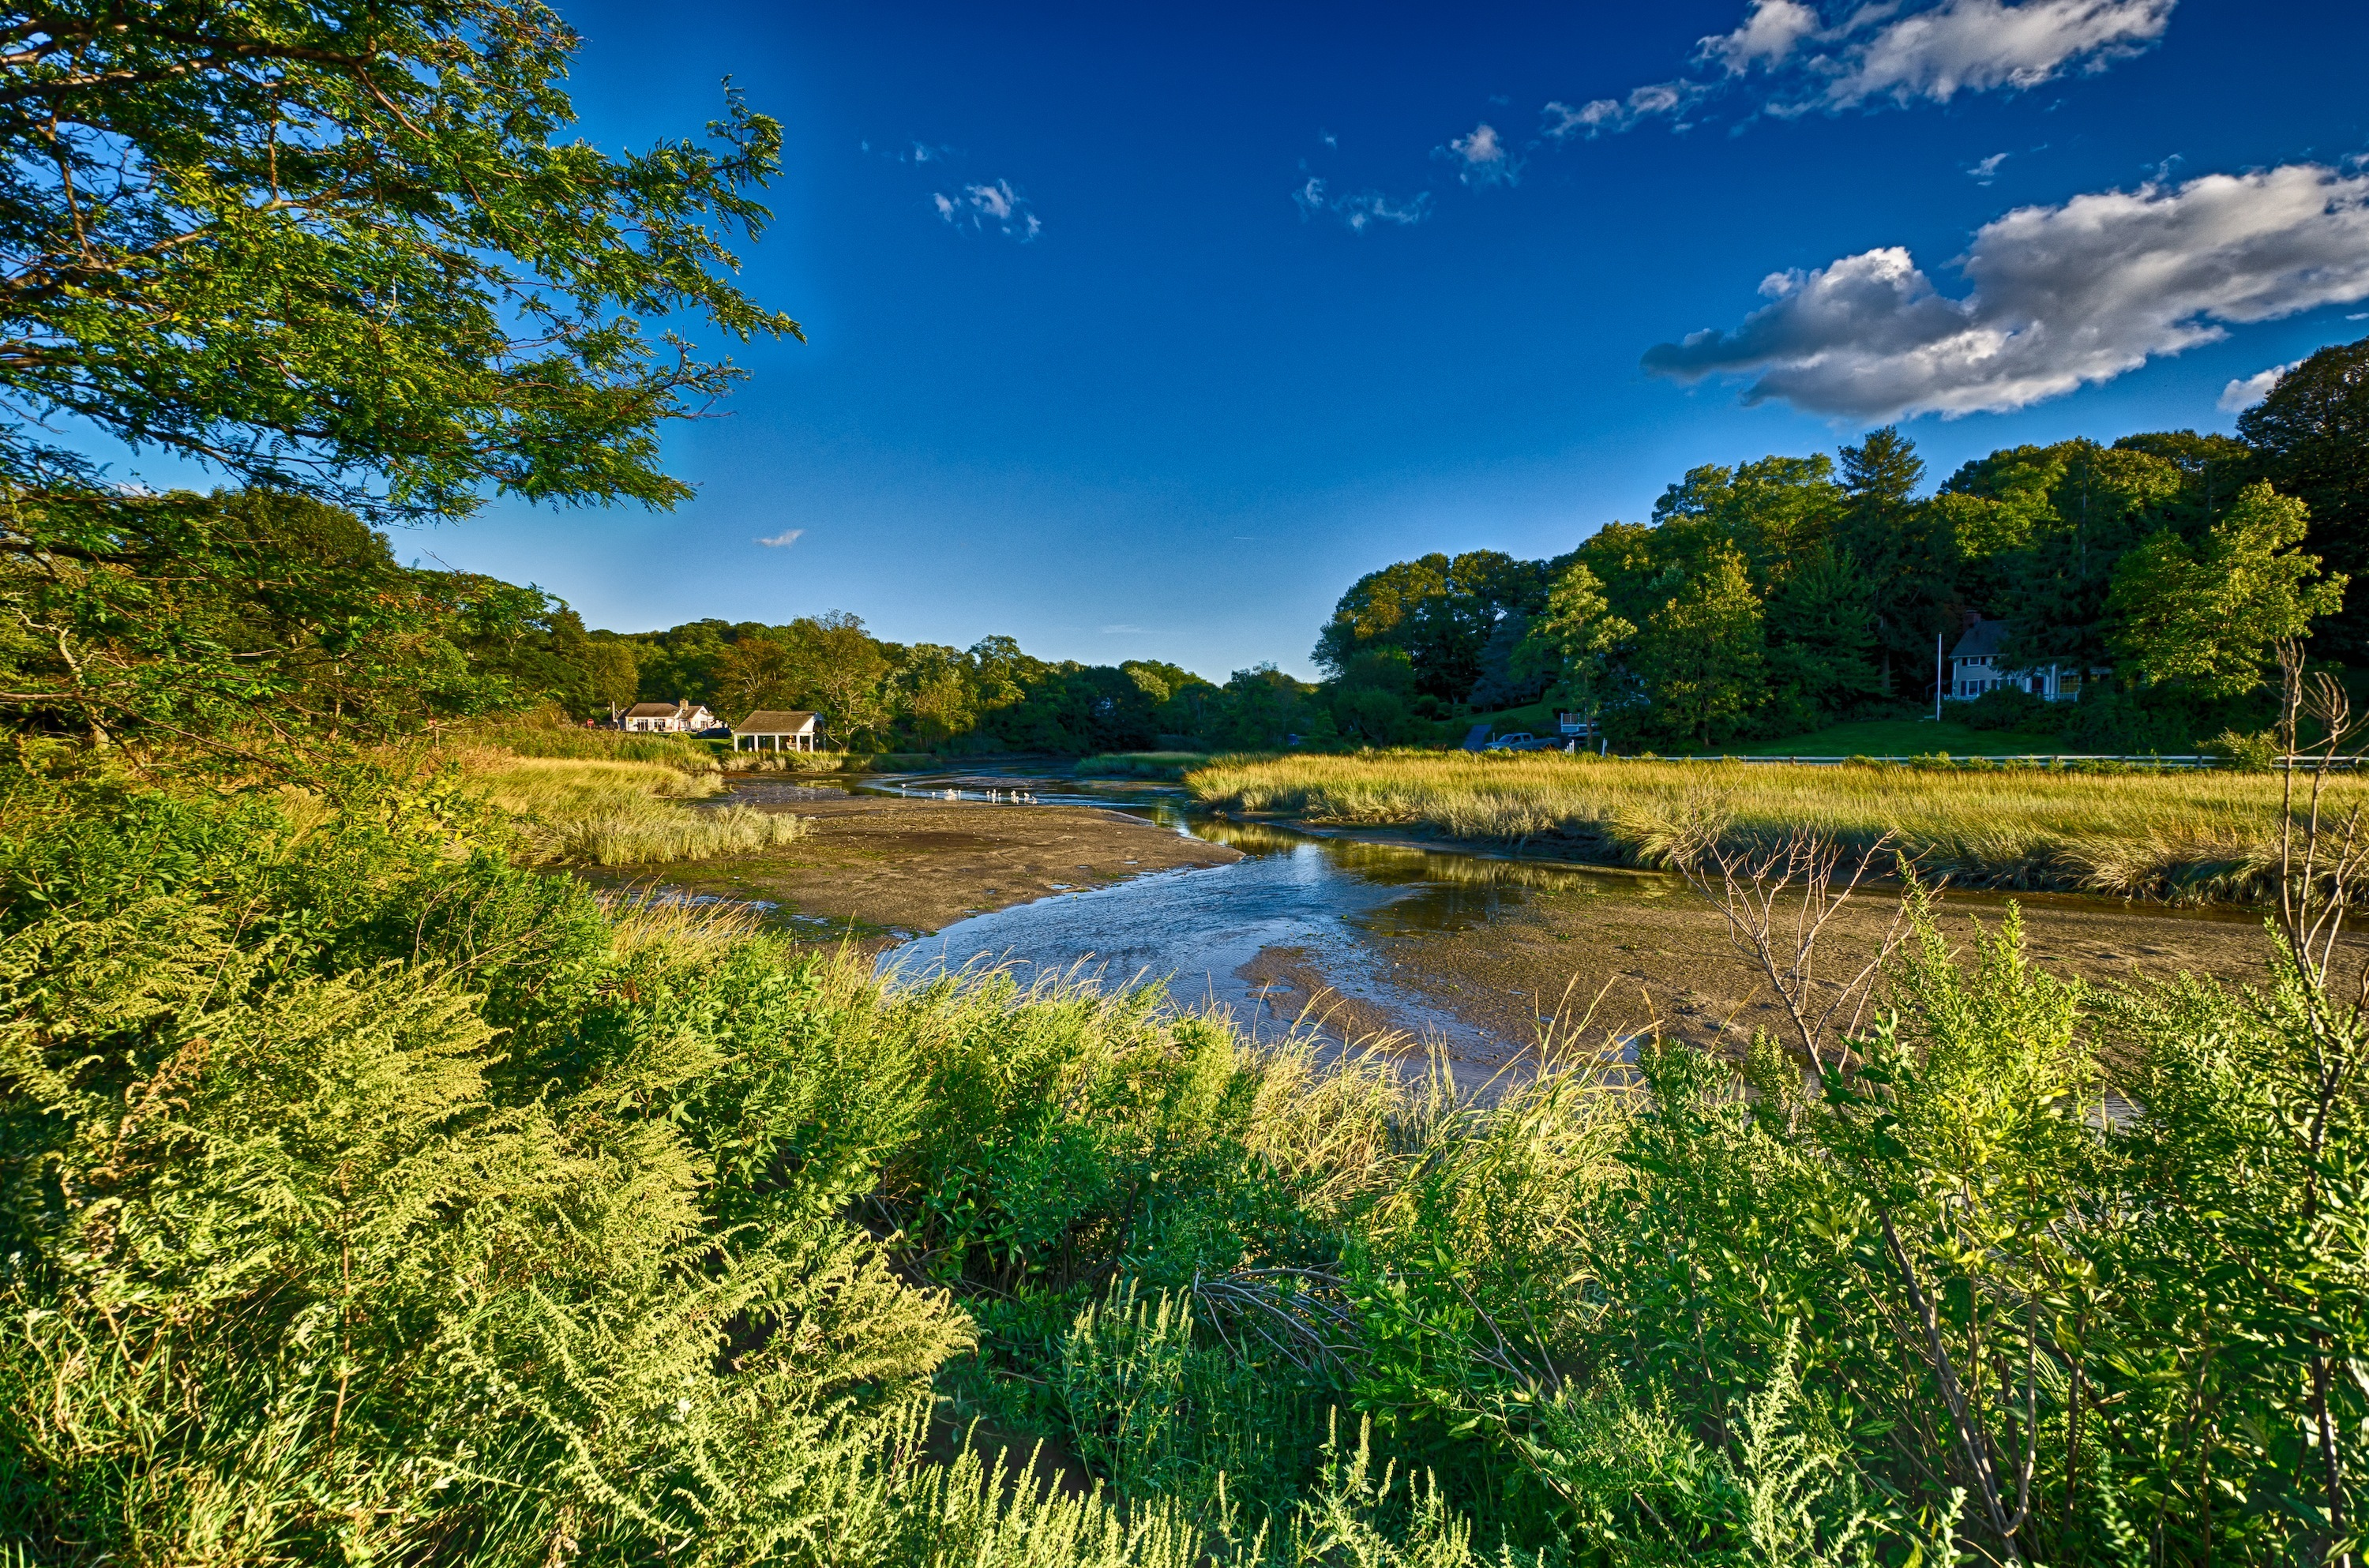 Long island new york landscape sky clouds trees river grass 3000x1986